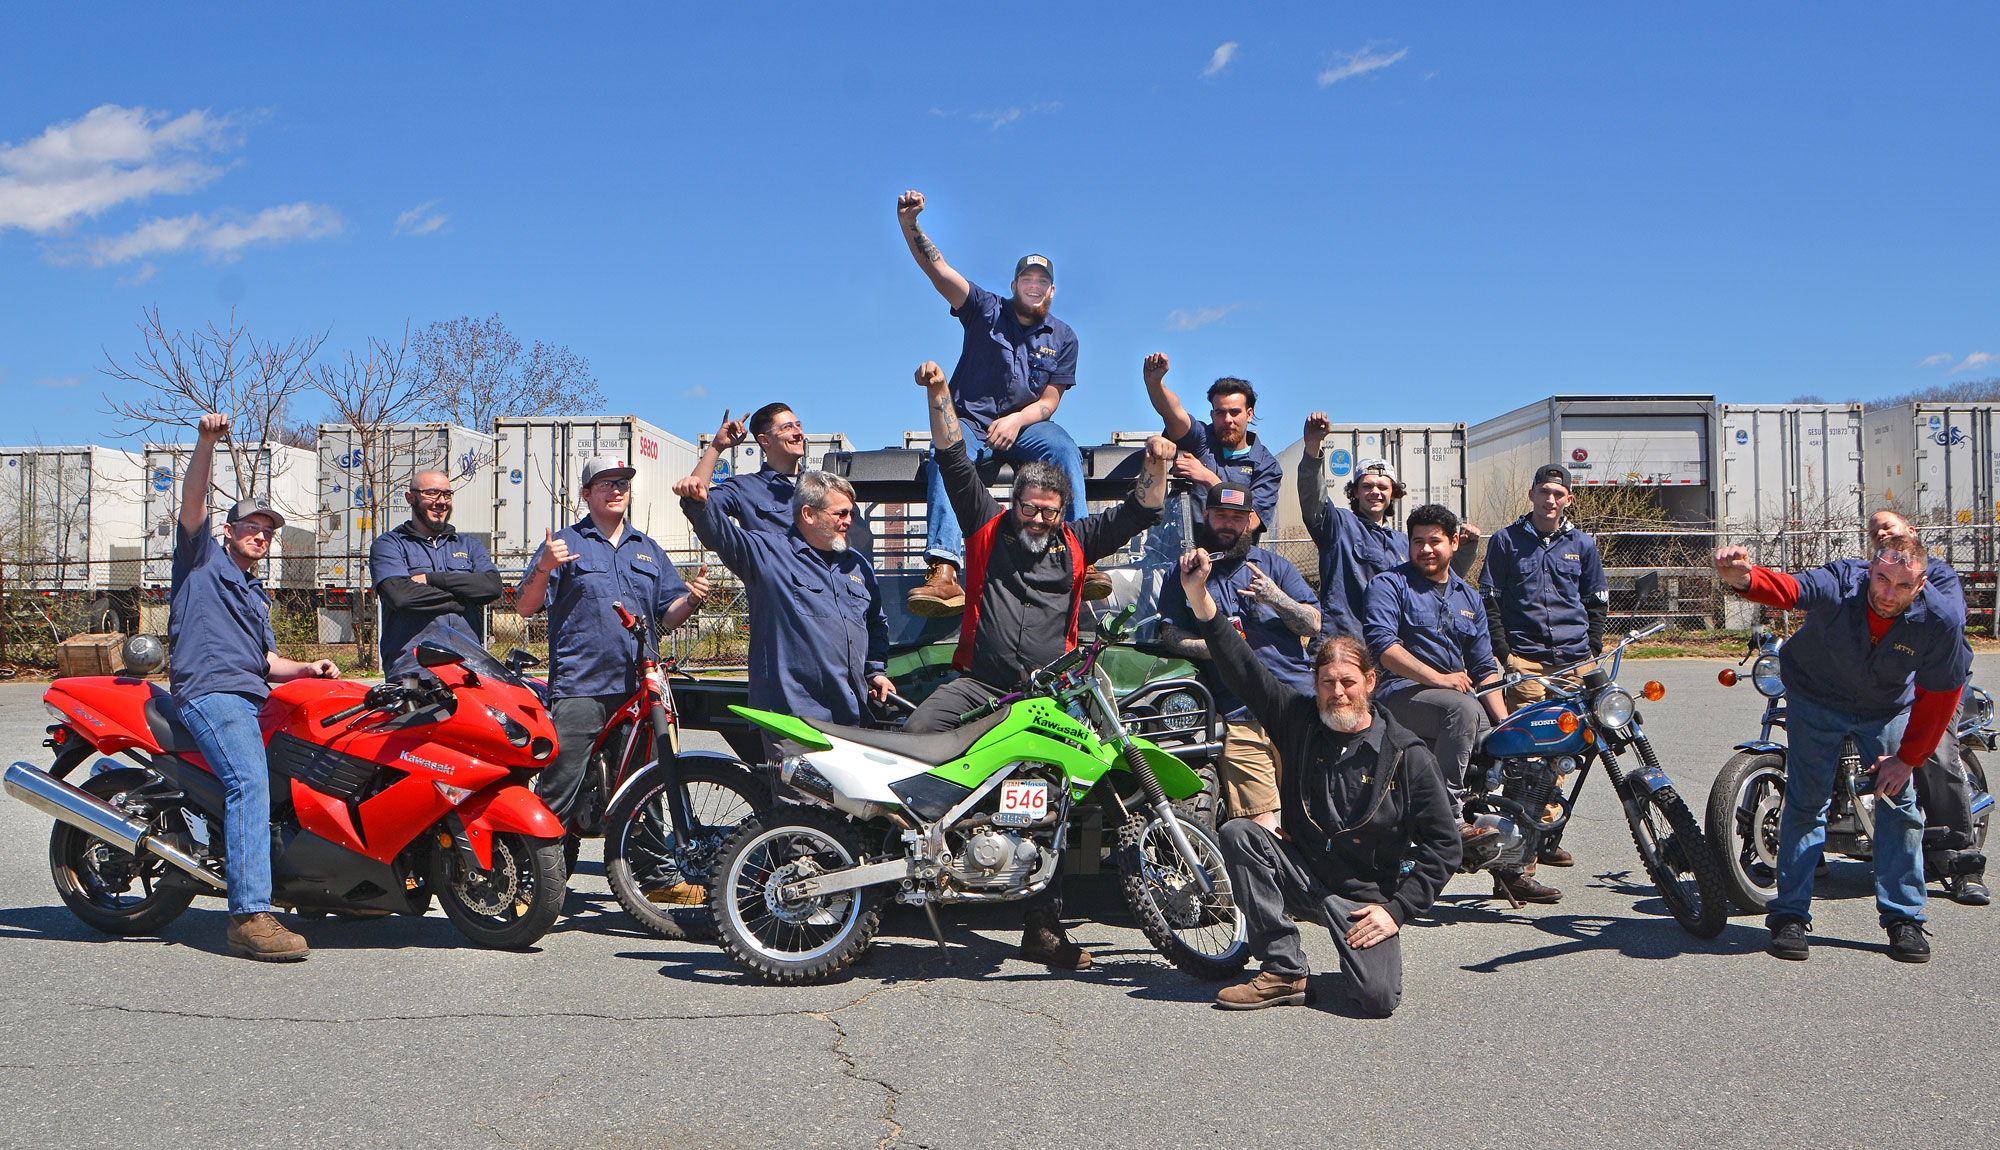 Gary & Bill With 2019 Motorcycle / Power Equipment Technician Students